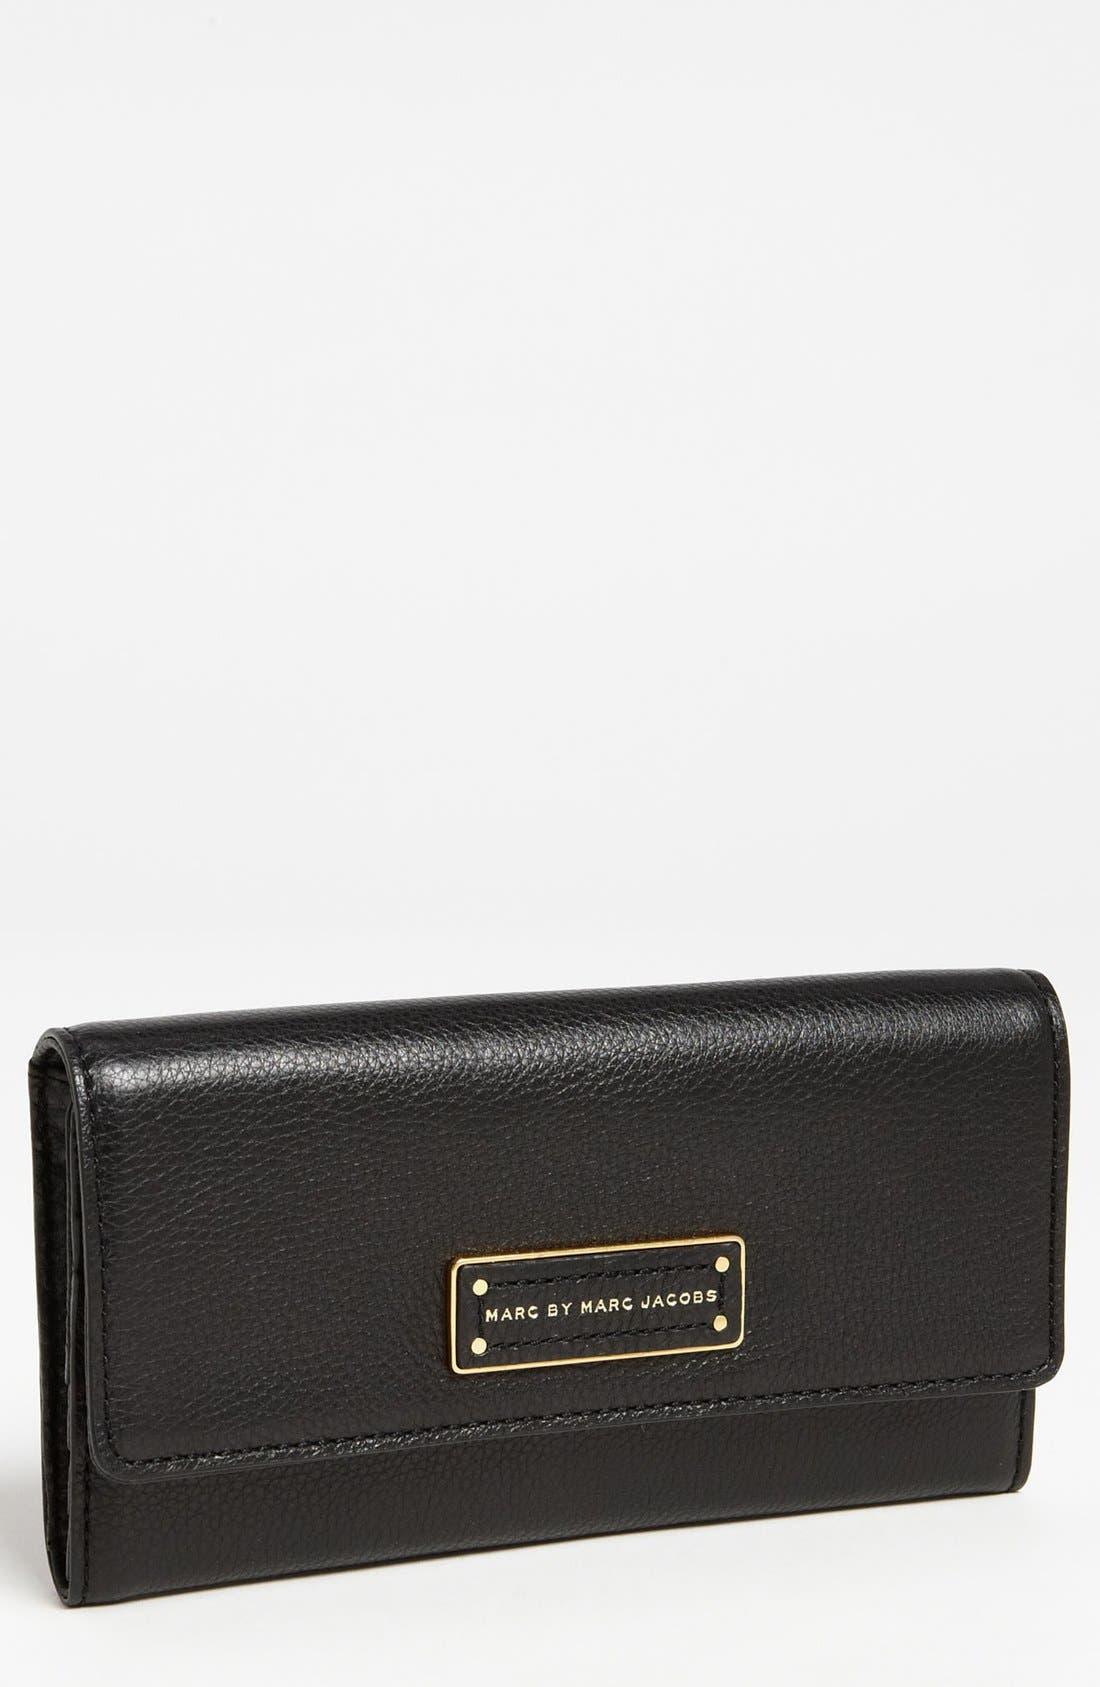 MARC JACOBS MARC BY MARC JACOBS 'Too Hot to Handle' Long Trifold Wallet, Main, color, 001